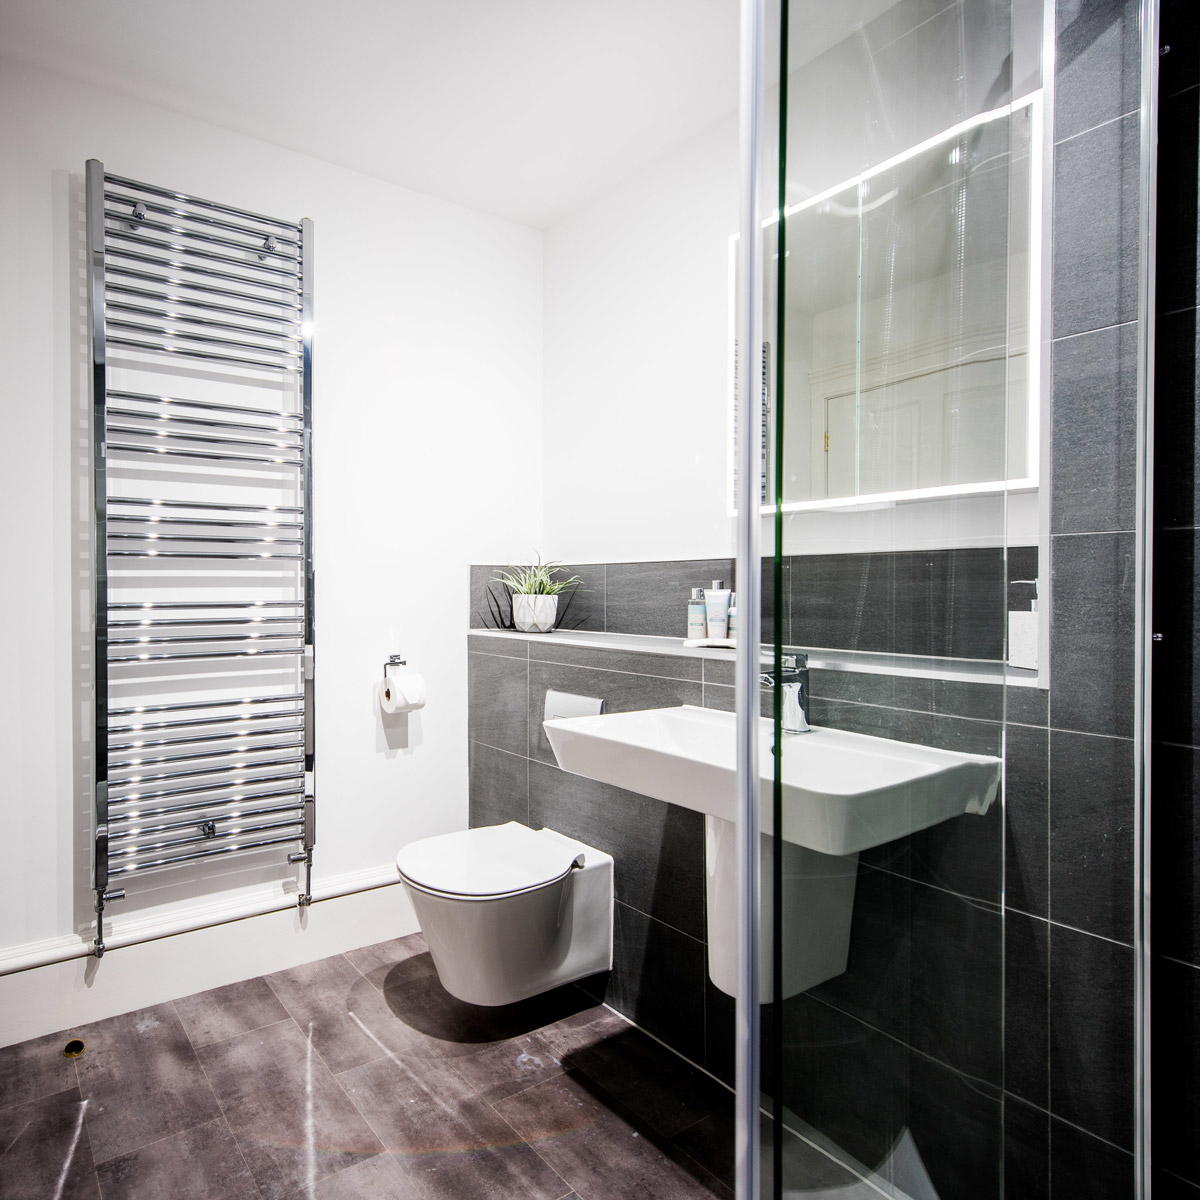 2 Bedroom Premium Apartment In Perth Cbd Adelaide Terrace: Earn Apartment Situated Within The Luxury Self Catering